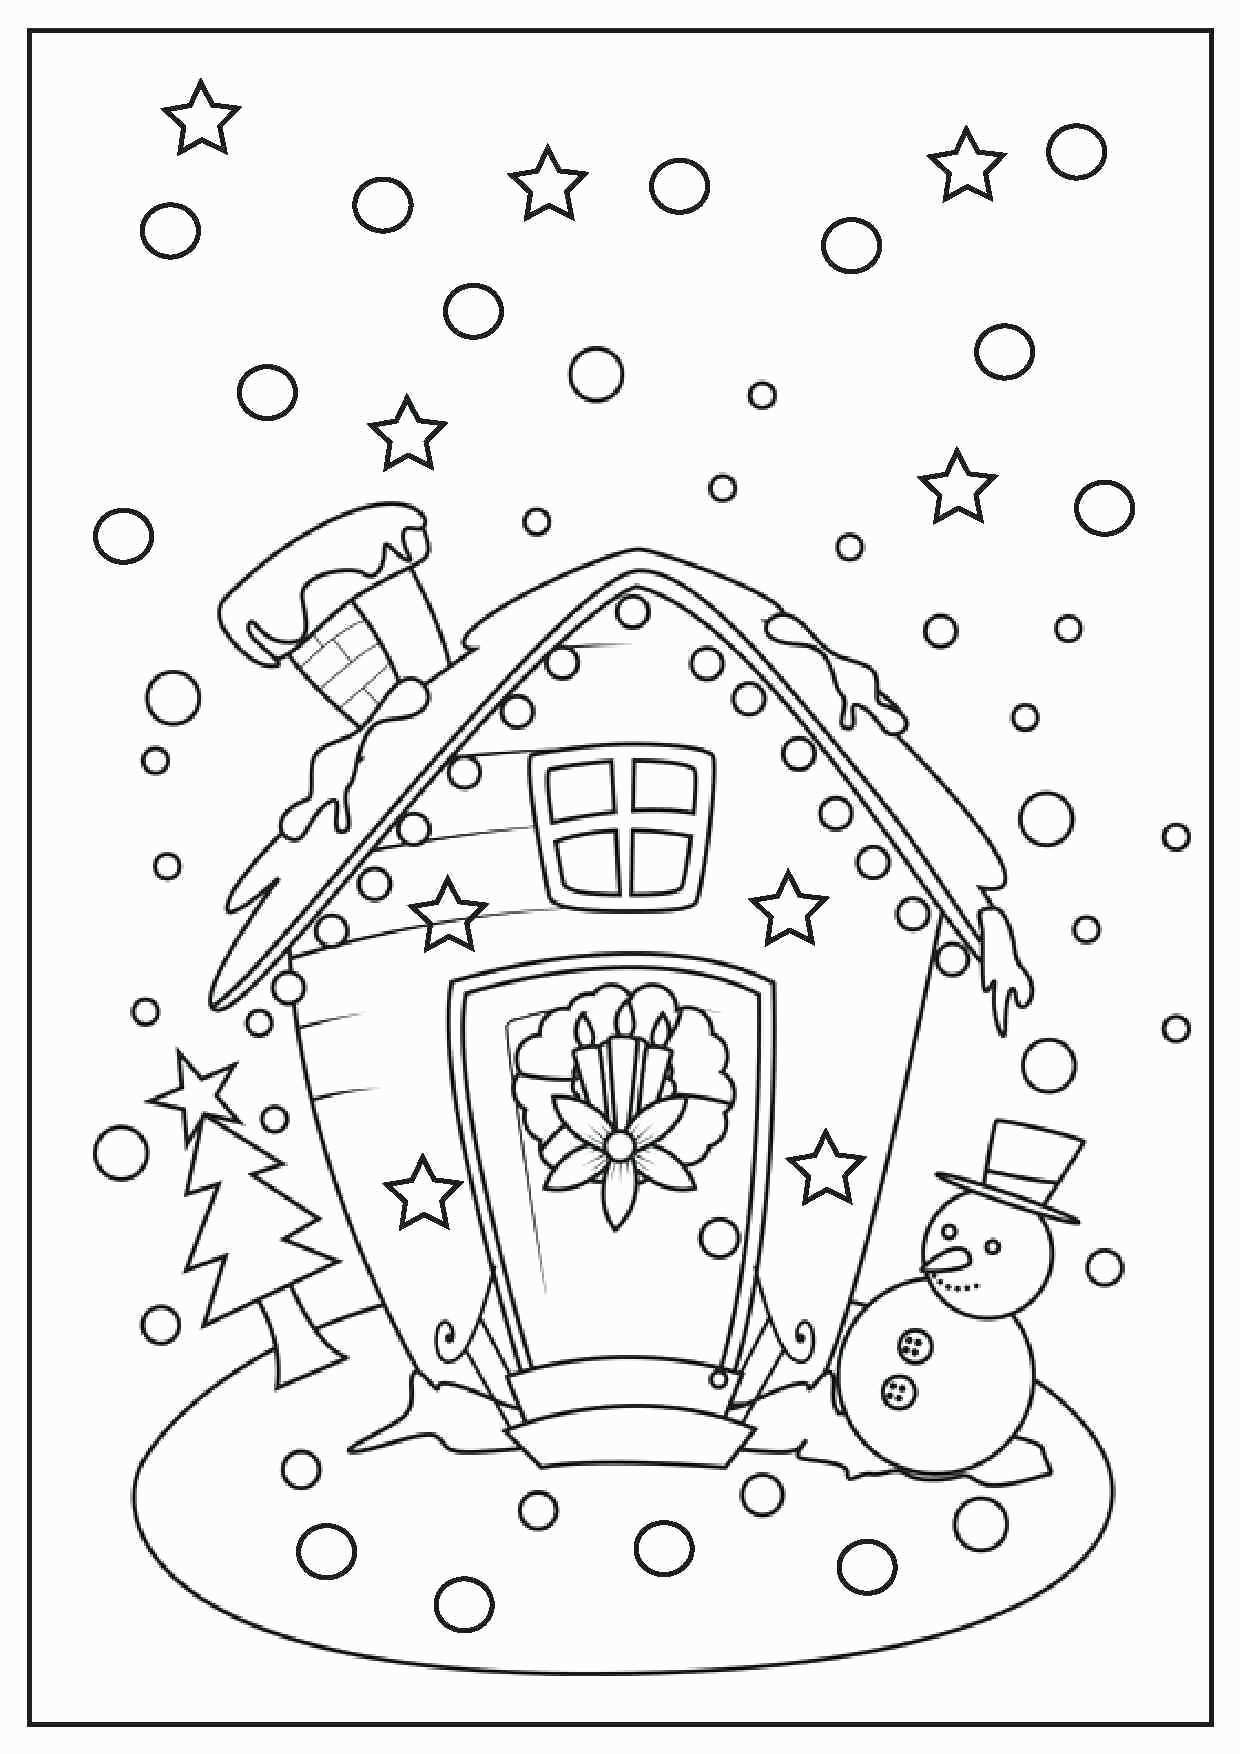 coloring pages rain forest Collection-Rainforest Coloring Pages Elegant Outline Coloring Pages Elegant Home Coloring Pages Best Color Sheet 13-e